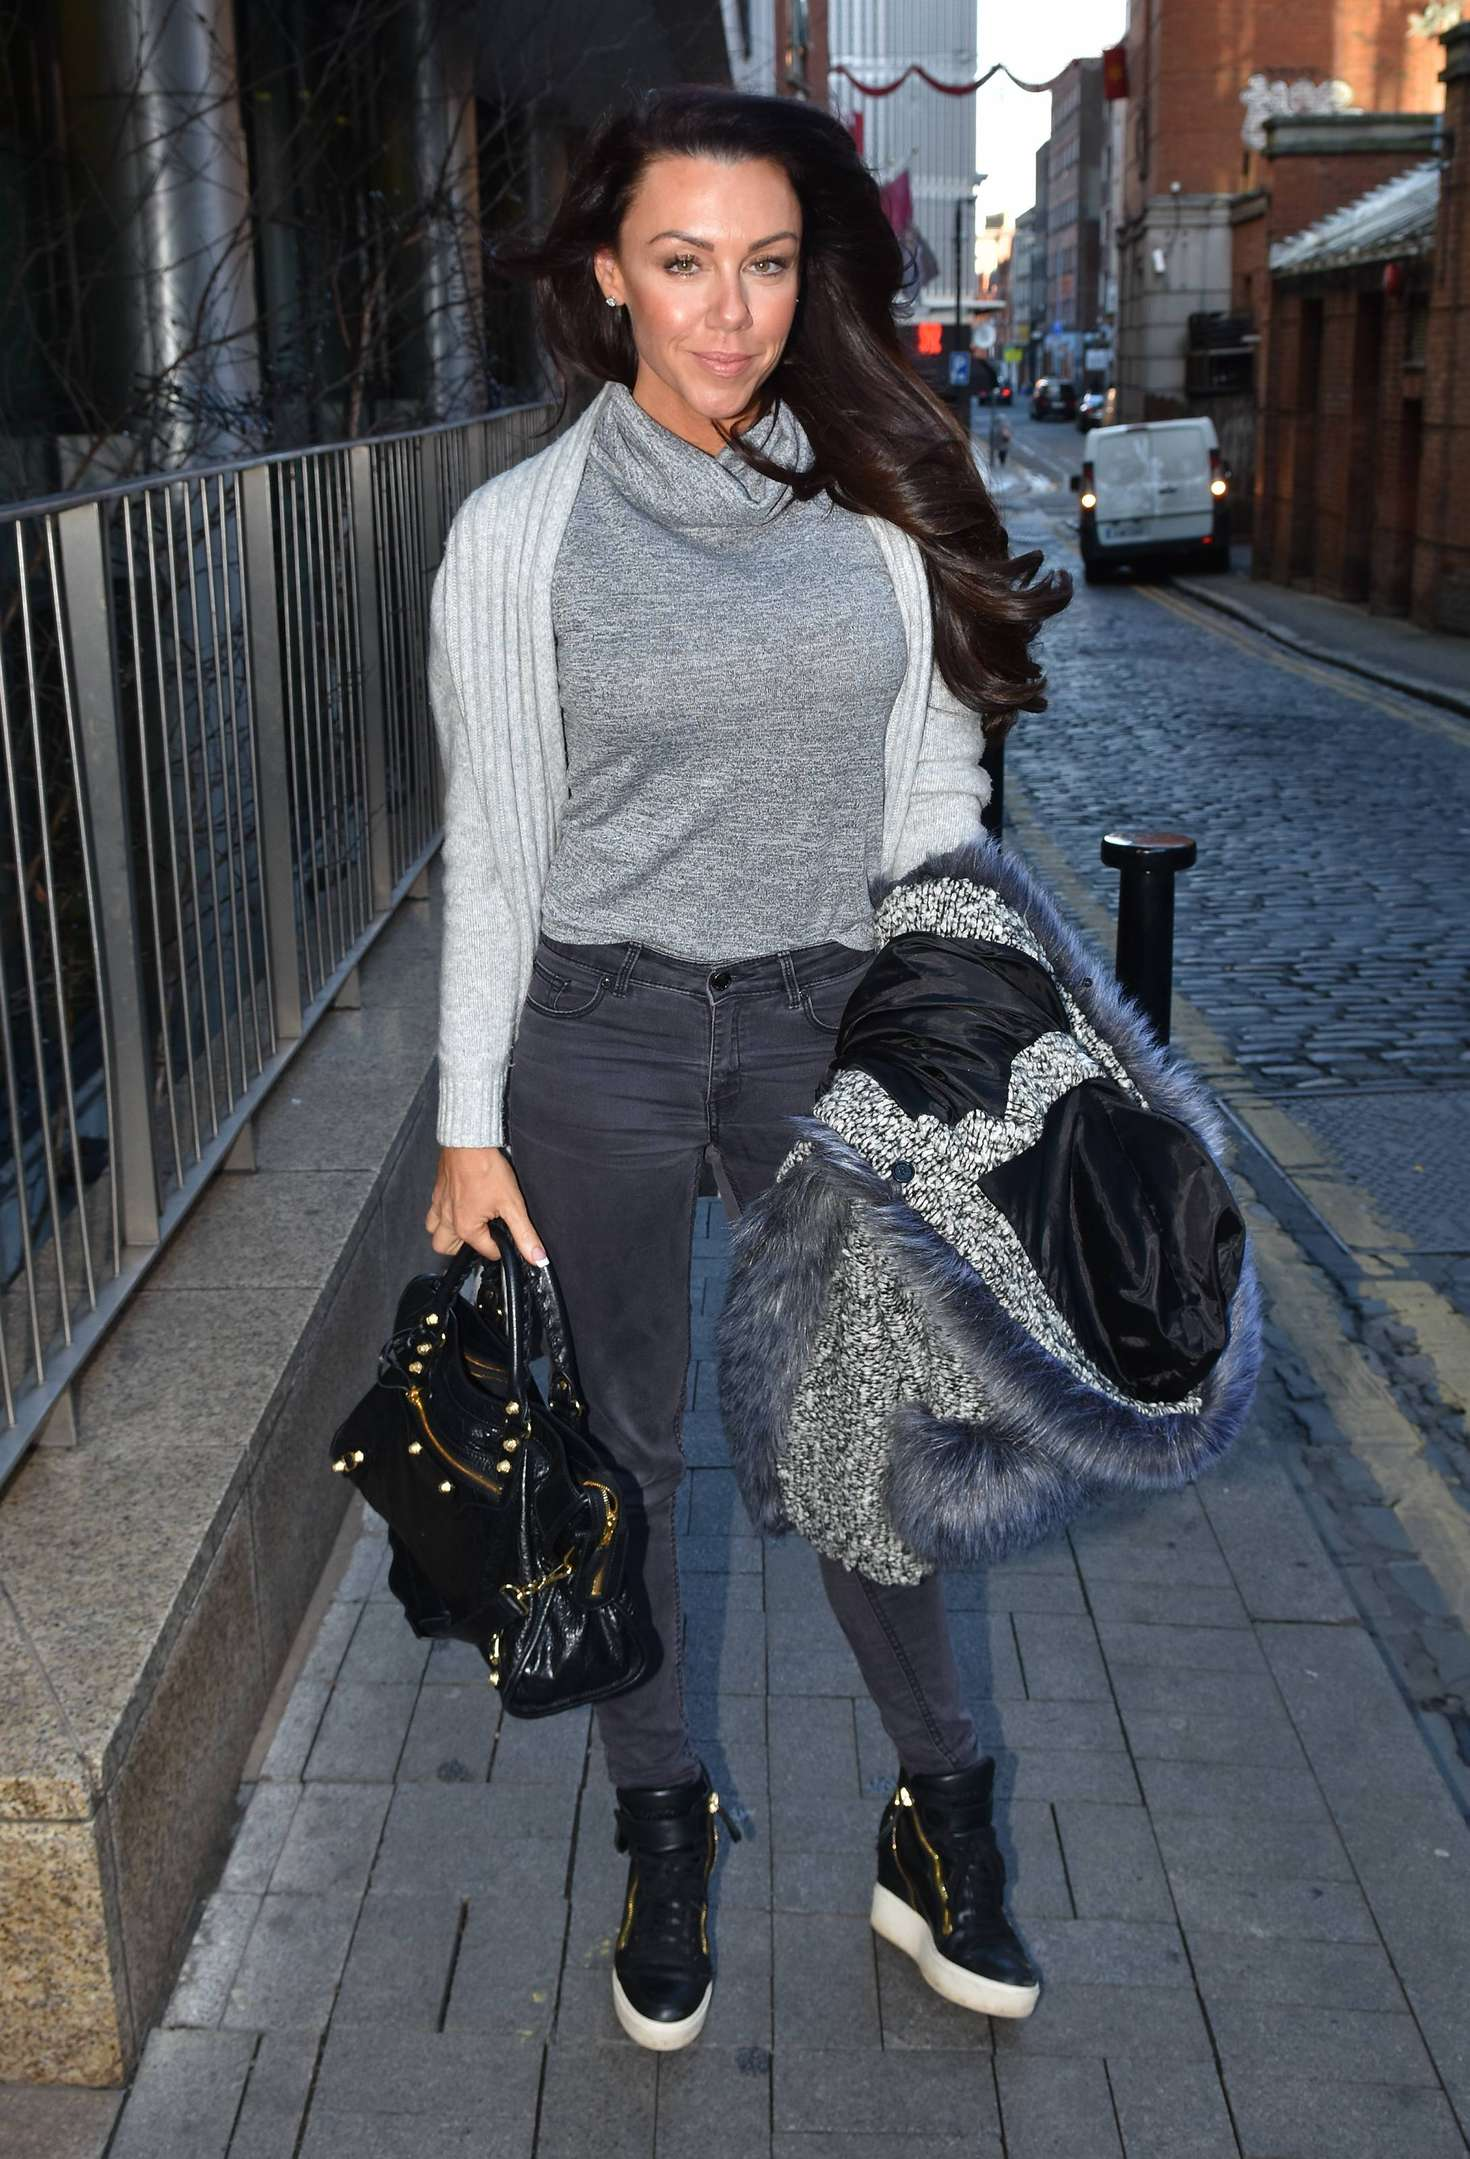 Michelle Heaton at Today FMs Anton Savage Show in Dublin